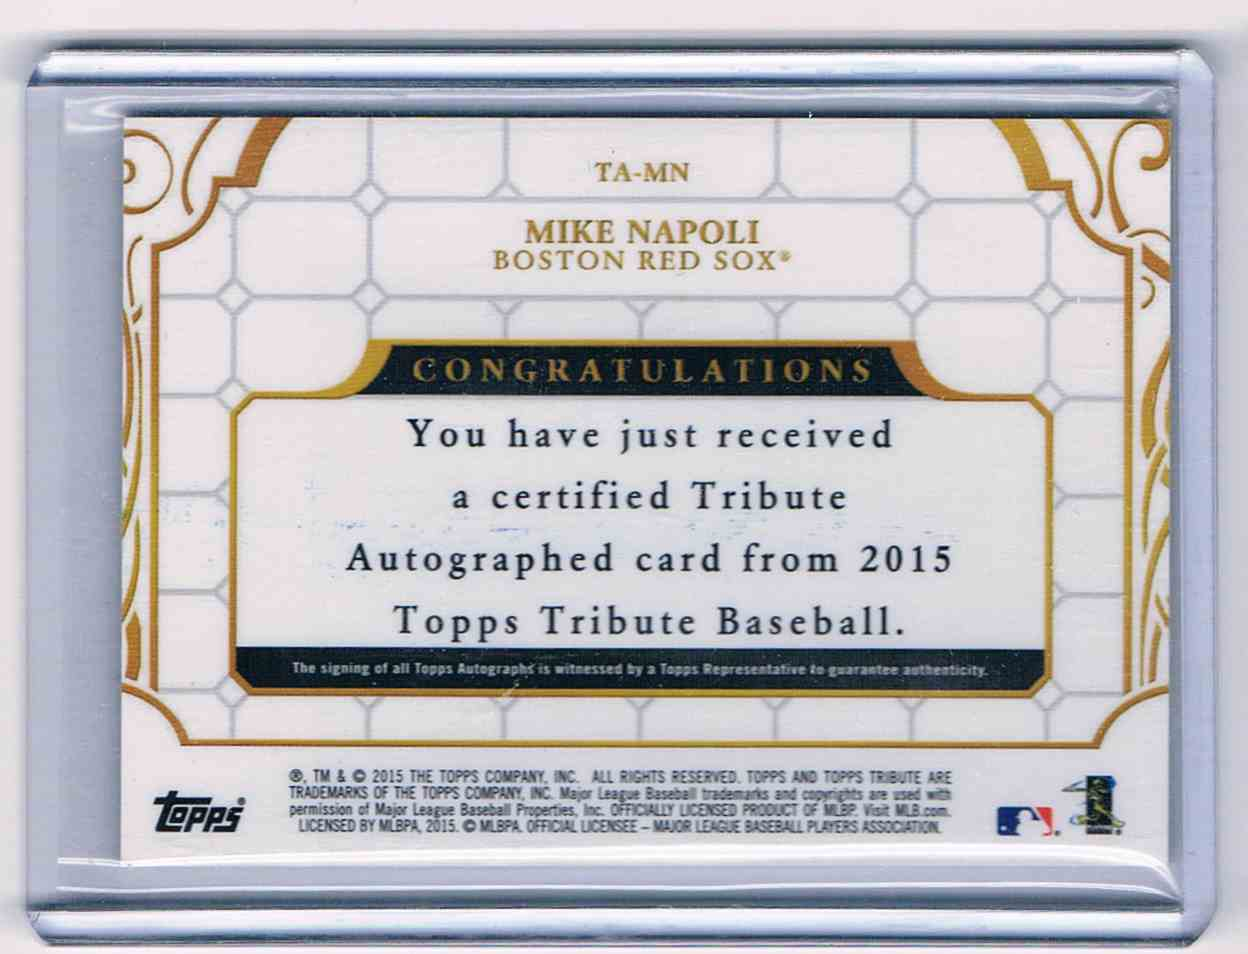 2015 Topps Tribute Mike Napoli #TA-MN card back image